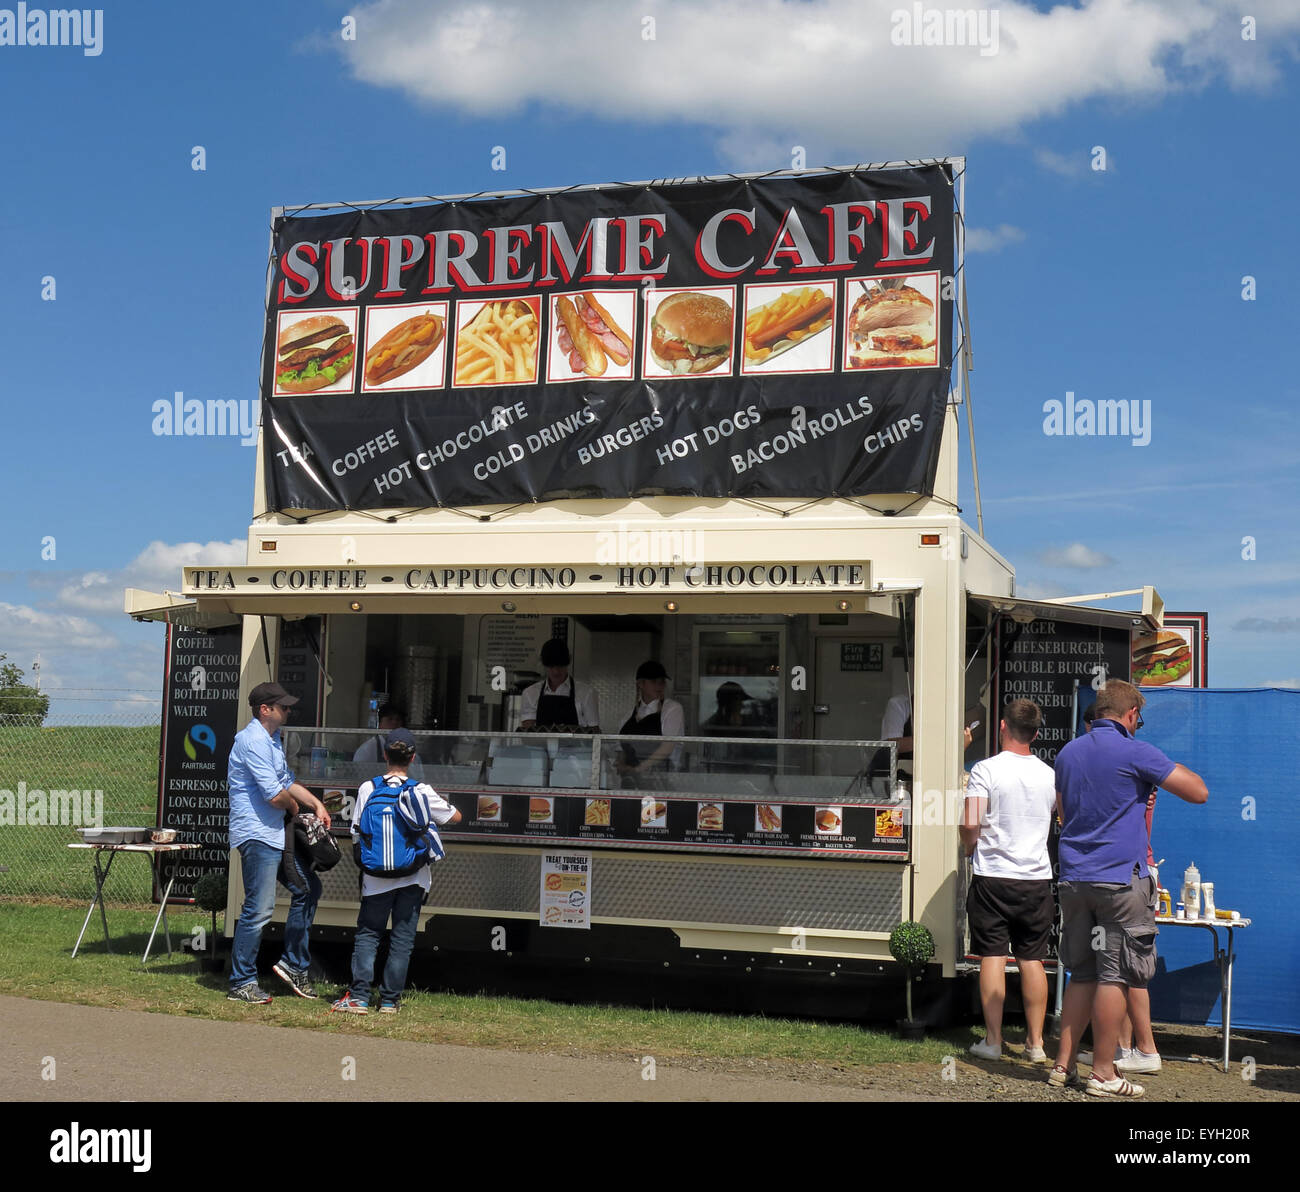 Event catering, Supreme Cafe, tea,coffee refreshments at summer event - Stock Image